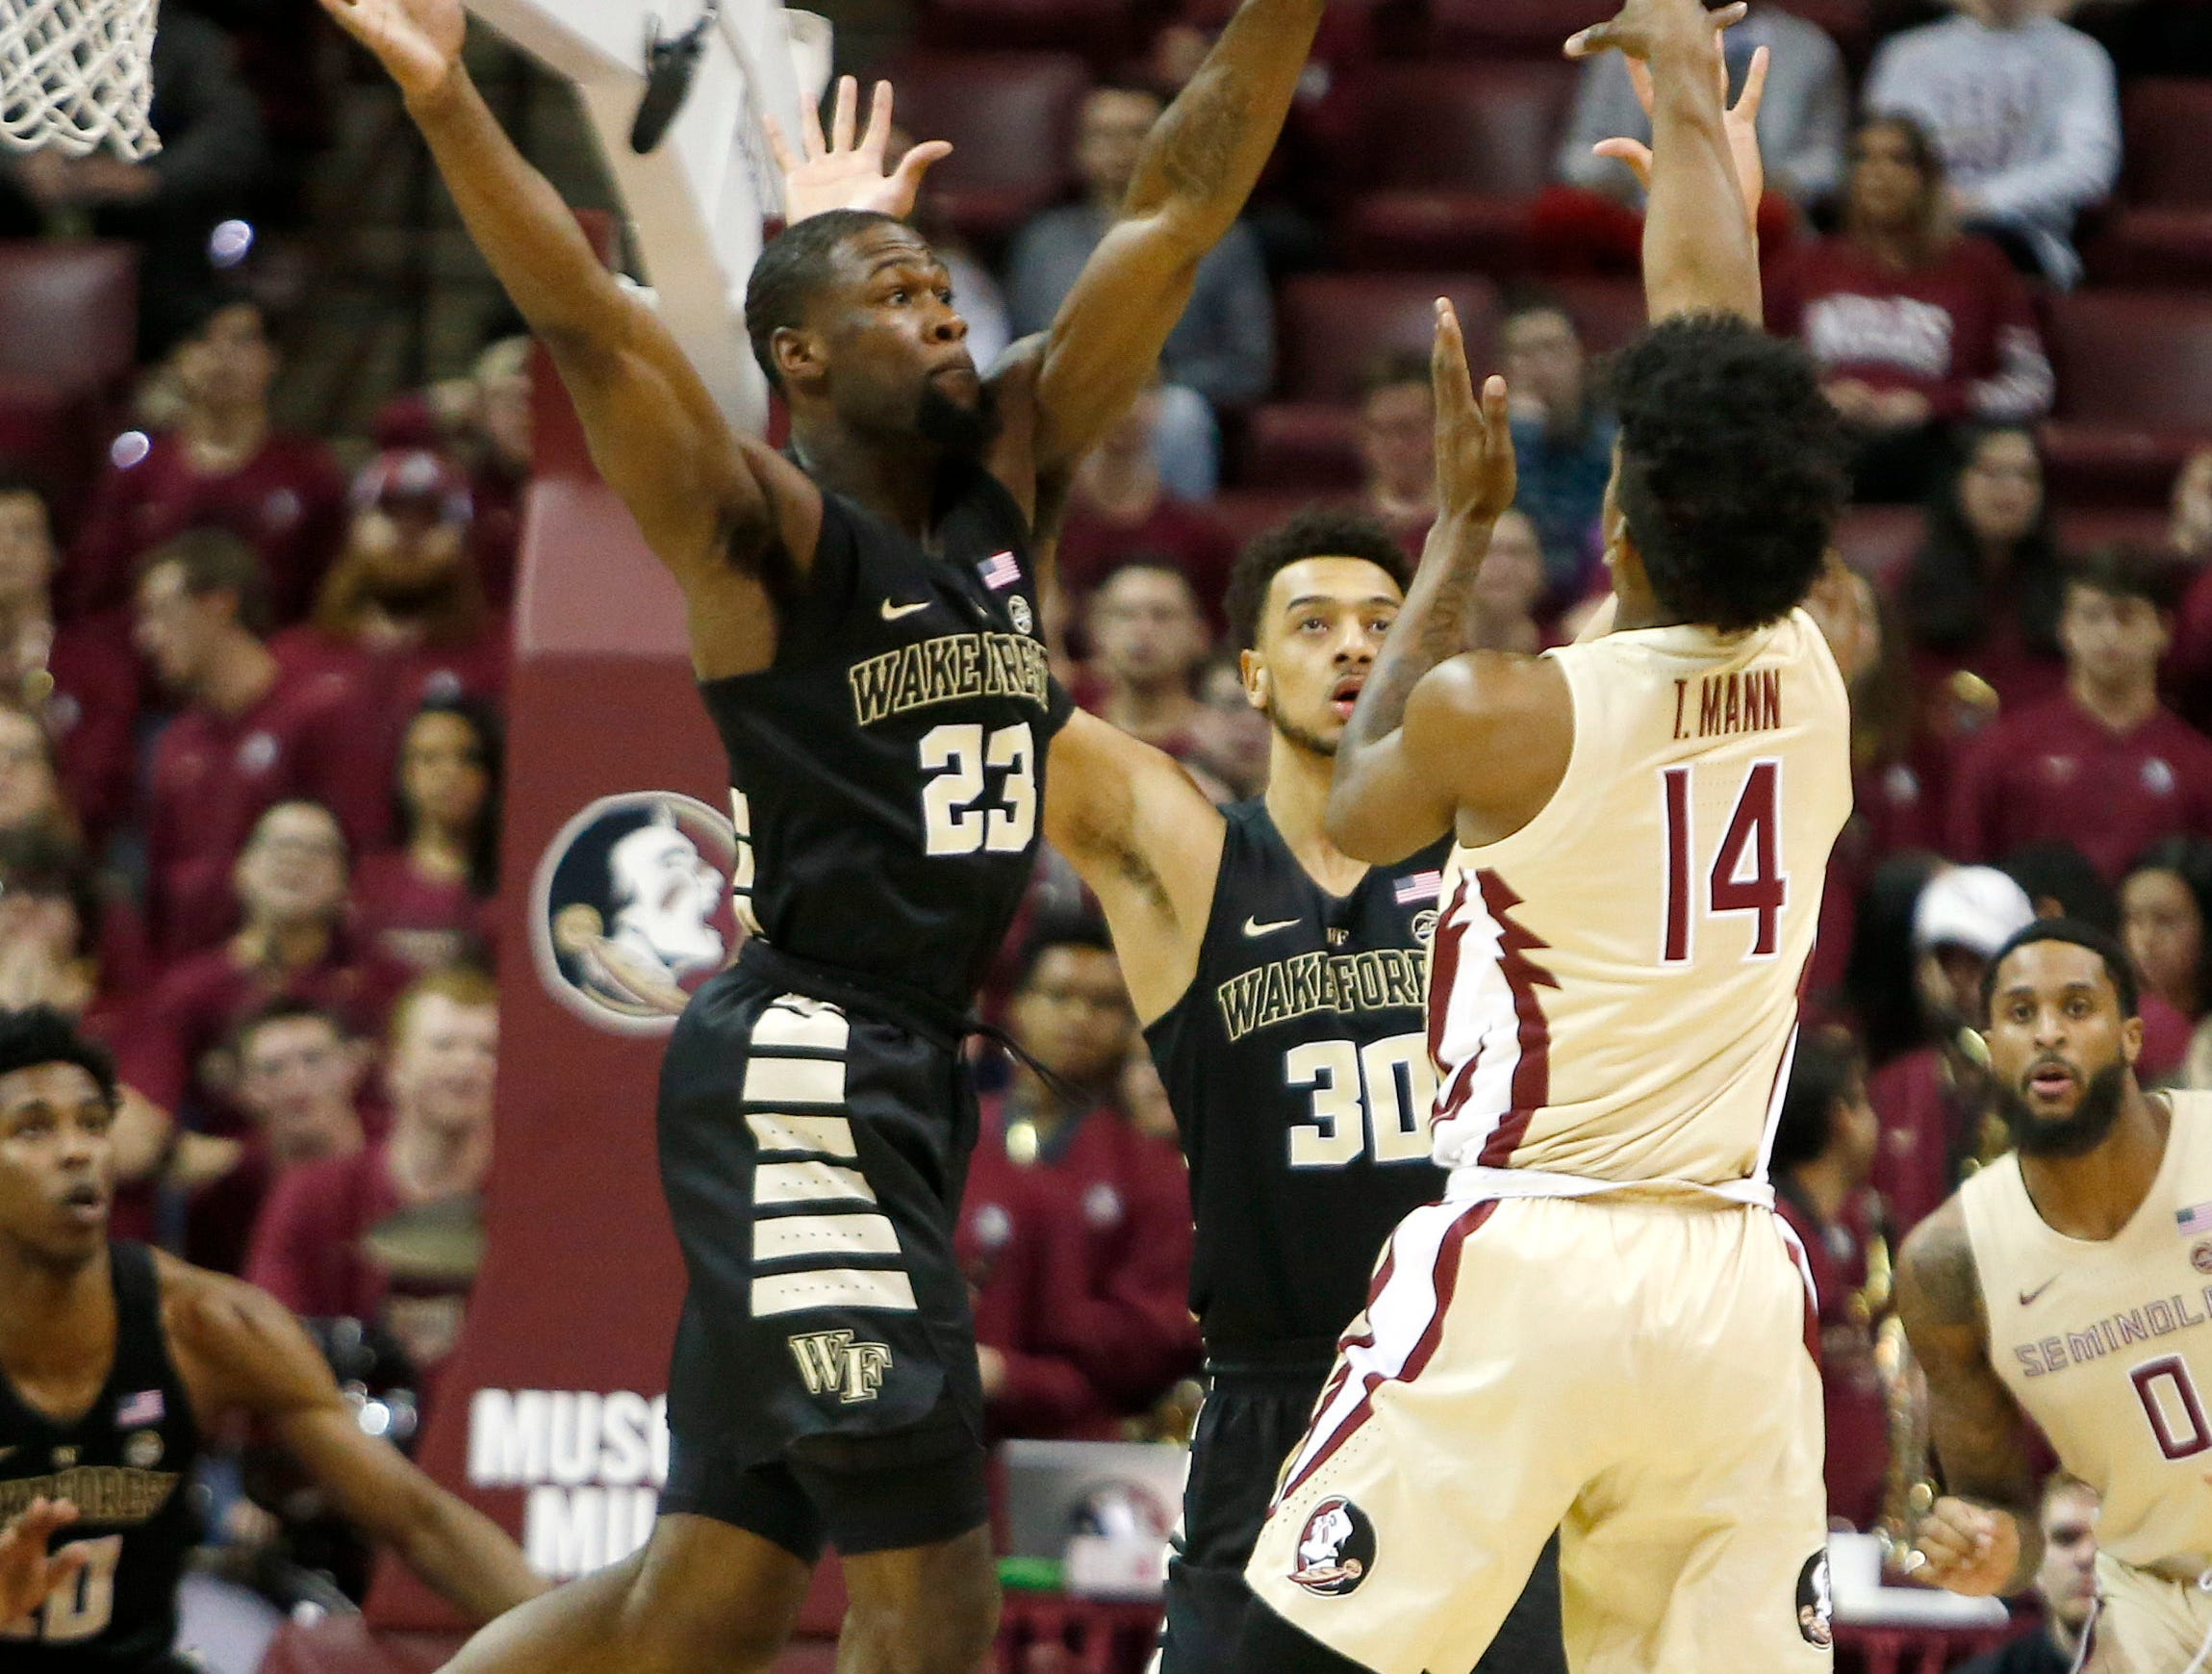 Feb 13, 2019; Tallahassee, FL, USA; Florida State Seminoles guard Terance Mann (14) passes the ball over Wake Forest Demon Deacons guard Chaundee Brown (23) and Demon Deacons center Olivier Sarr (30) during the first half of action at Donald L. Tucker Center. Mandatory Credit: Glenn Beil-USA TODAY Sports